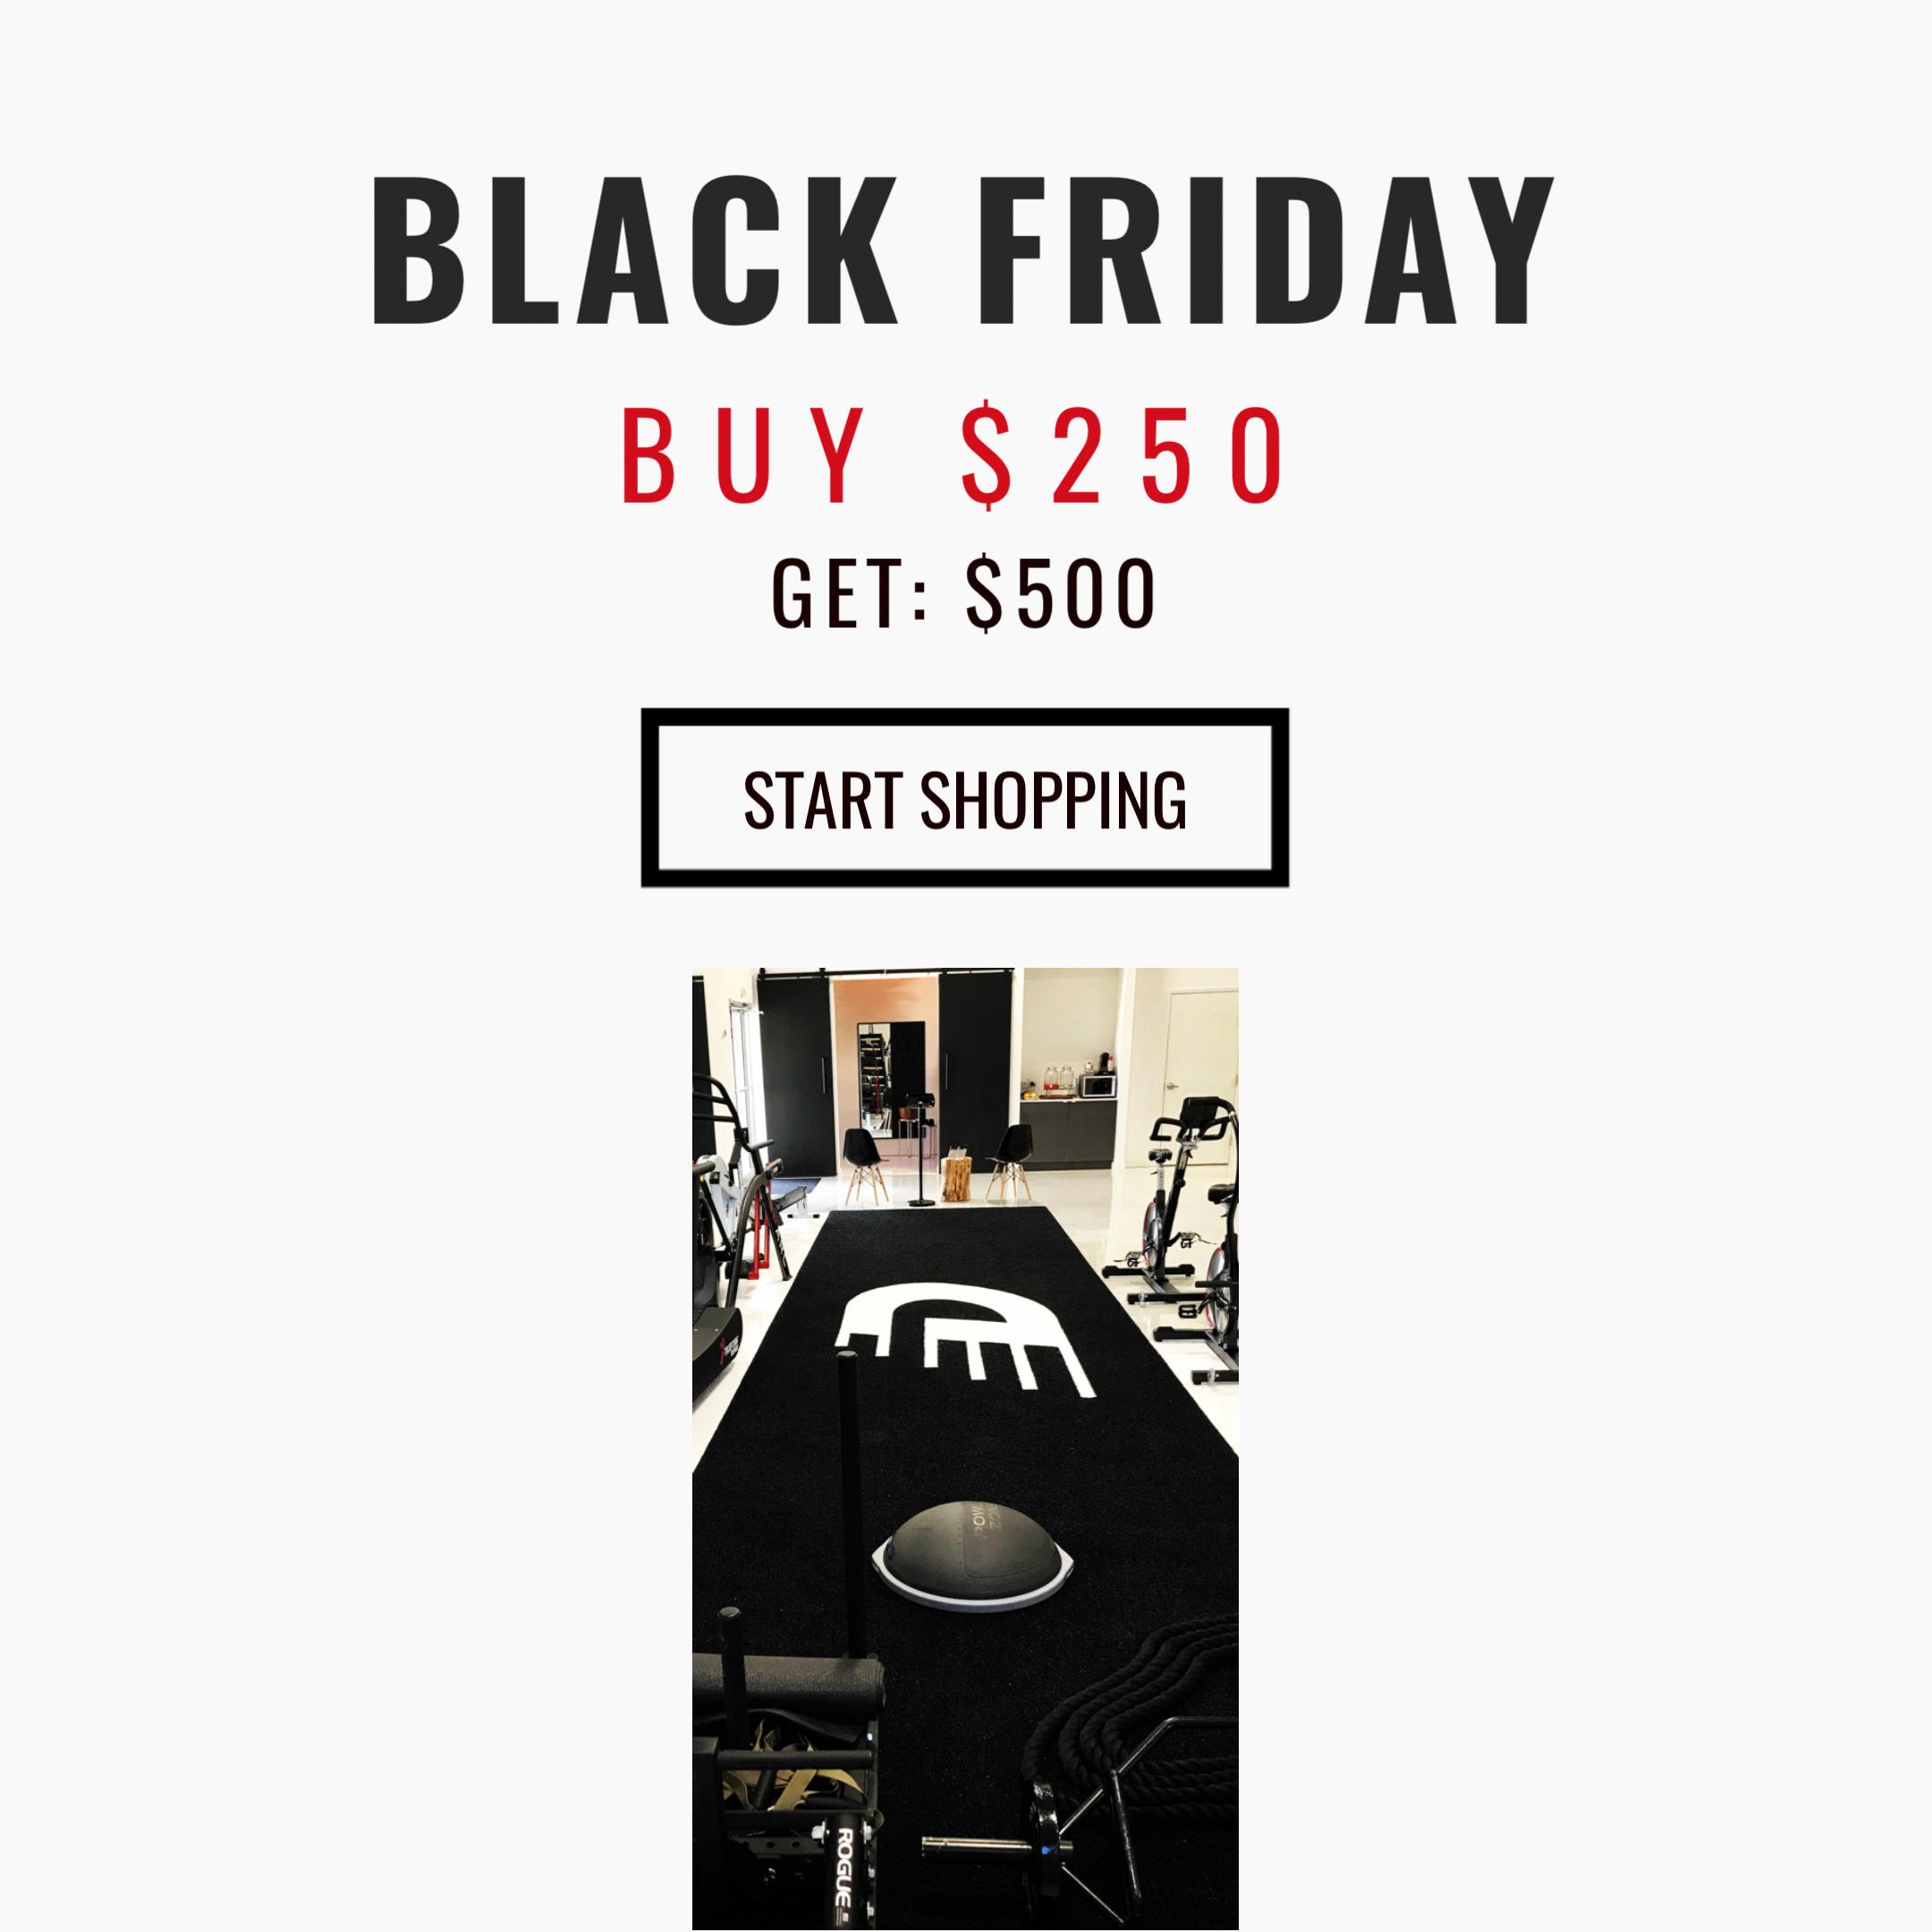 Black Friday Fitness Gift Card